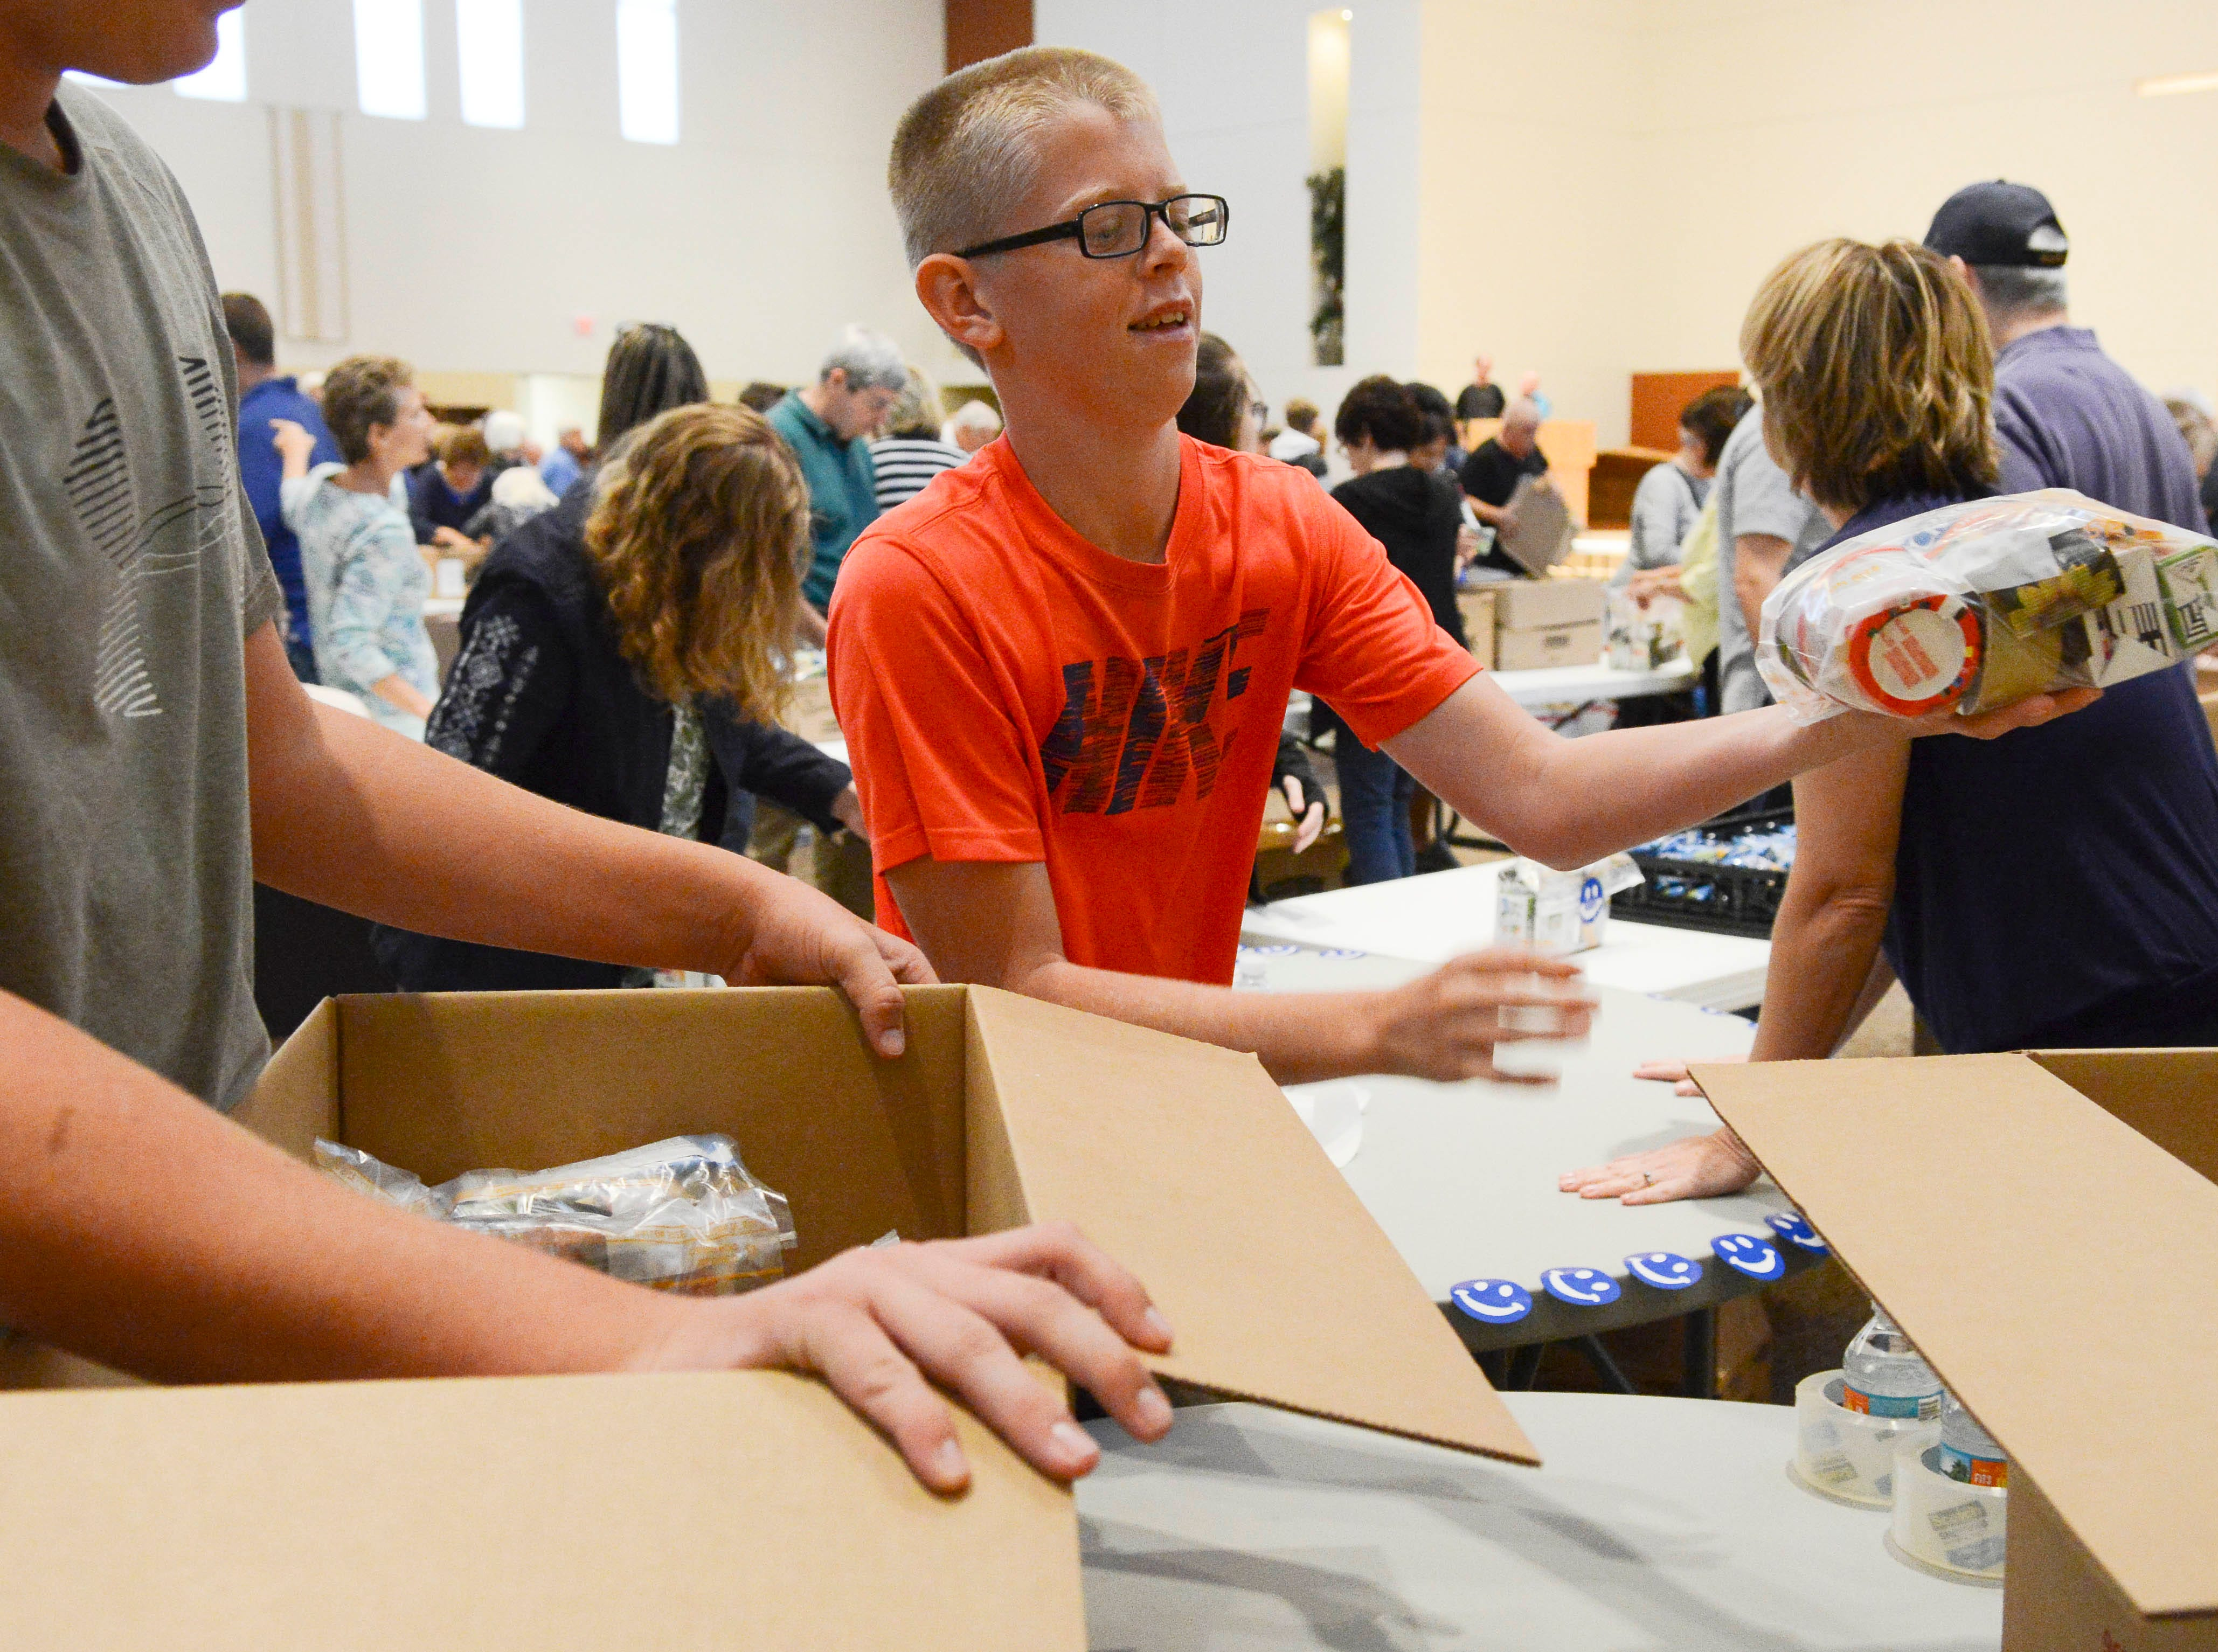 Colby Kessel helps load boxes with food packets Saturday morning  at St. John the Evangelist church in Viera. Hundreds of volunteers came to the church to help pack lunch kits for The Children's Hunger Project.